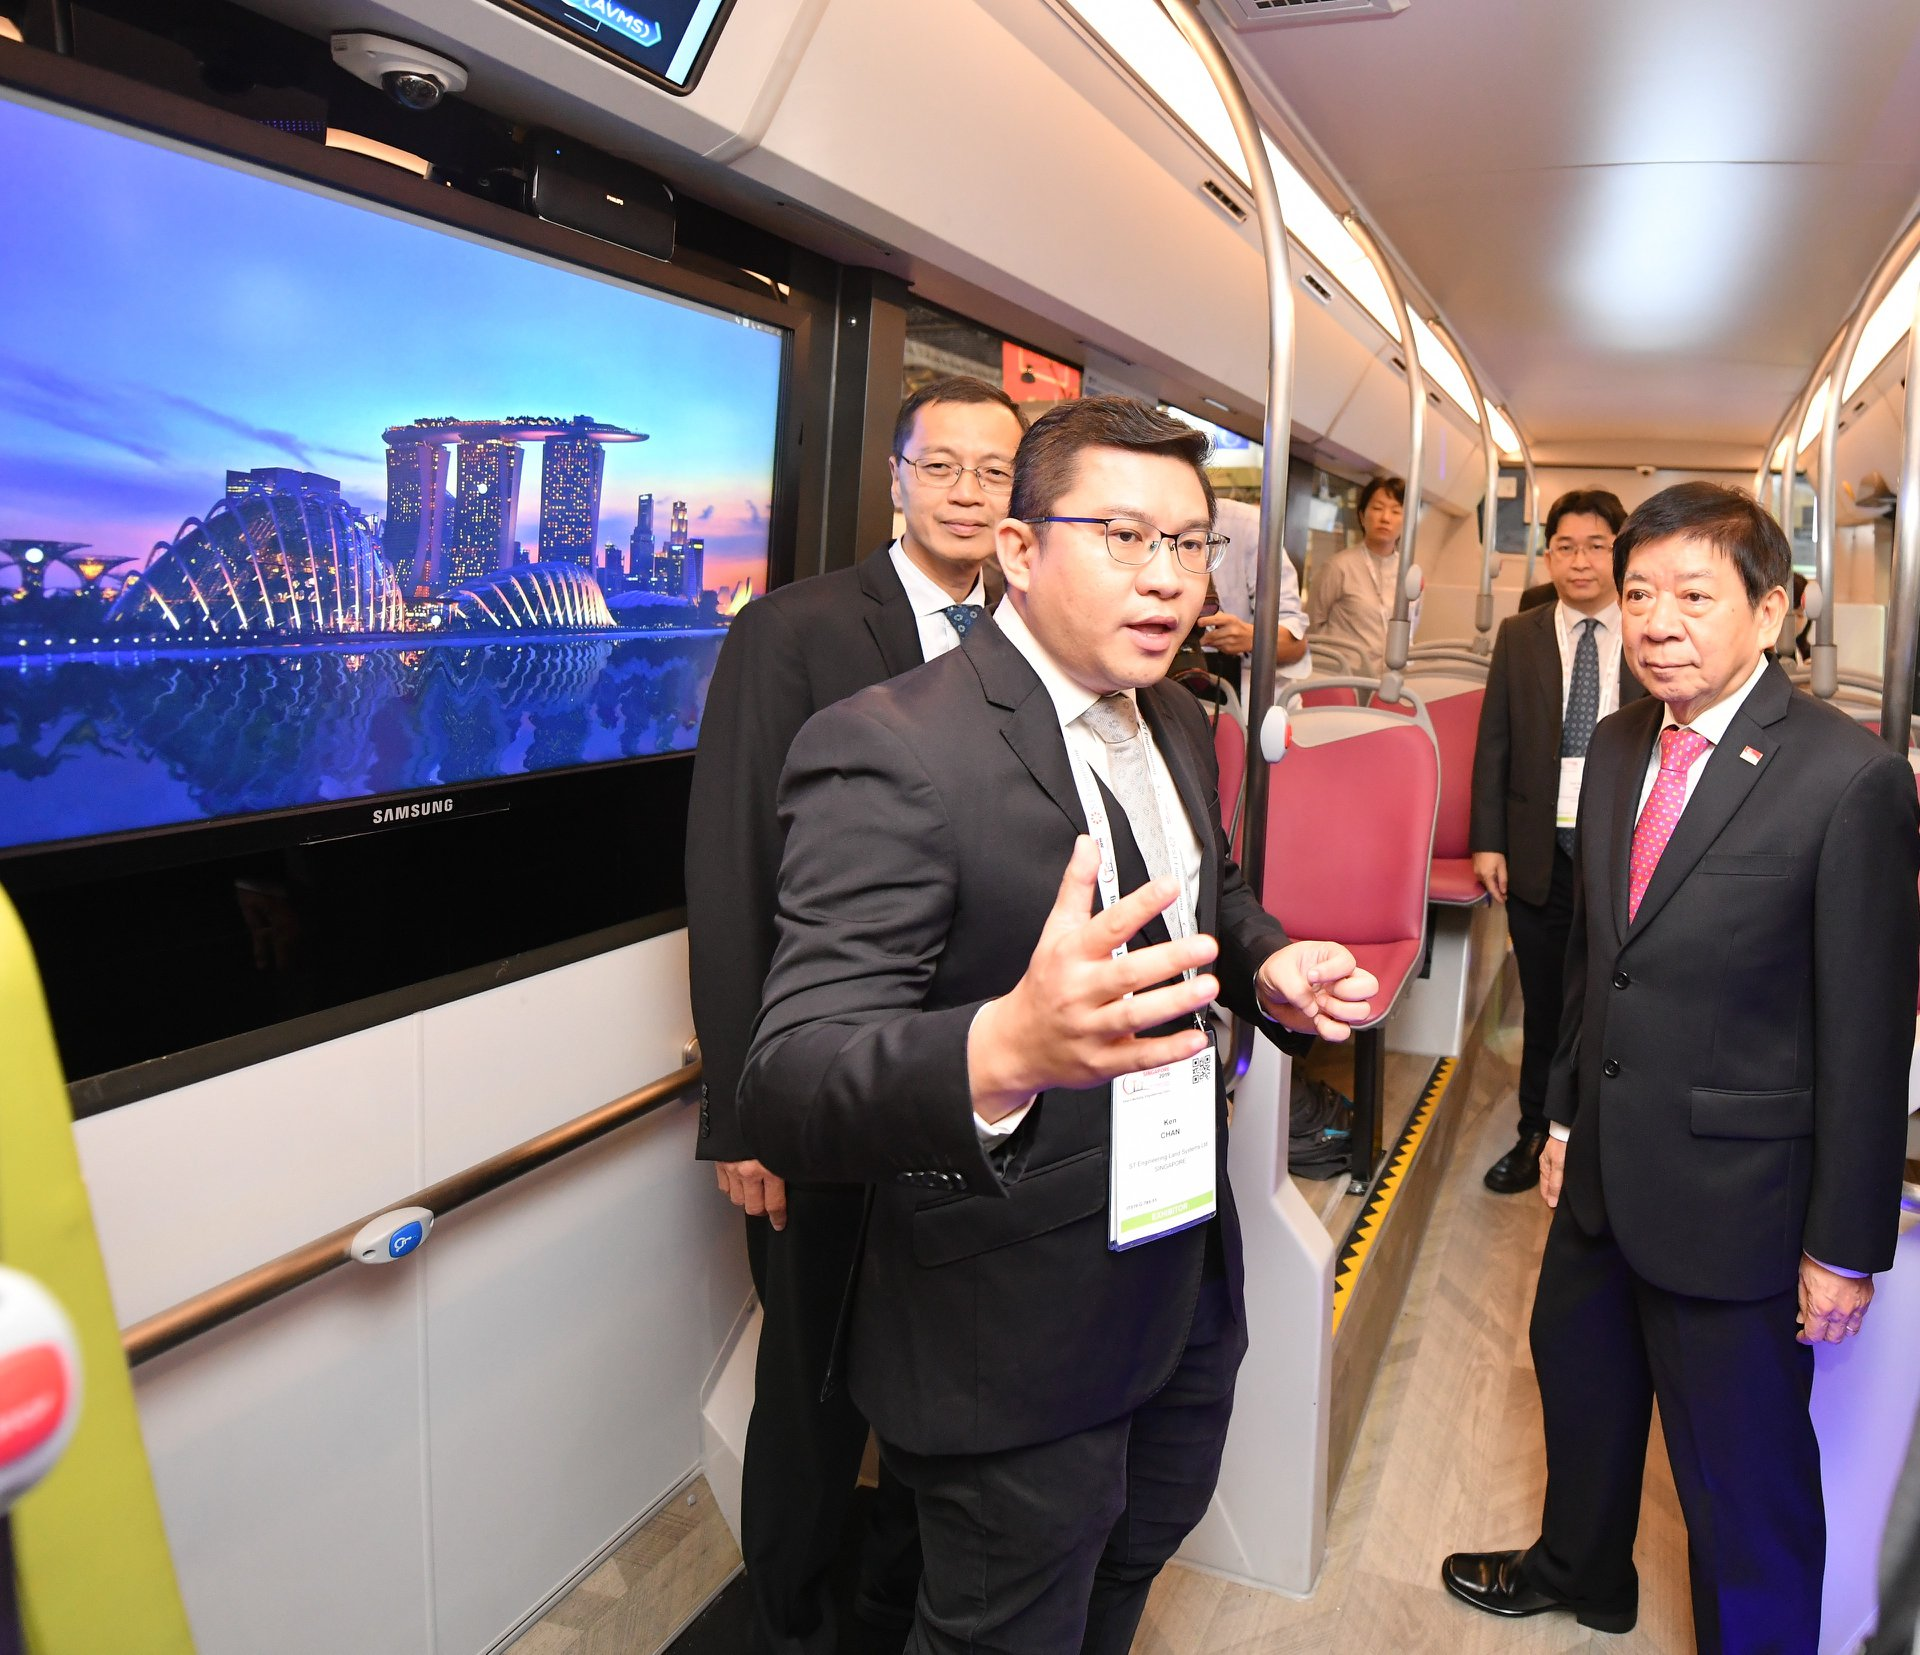 The 12-metre Strobo autonomous bus developed by ST Engineering is one of the many innovations showcased at the ITS World Congress exhibition at Suntec Singapore Convention & Exhibition Centre. Photo courtesy: ITS World Congress